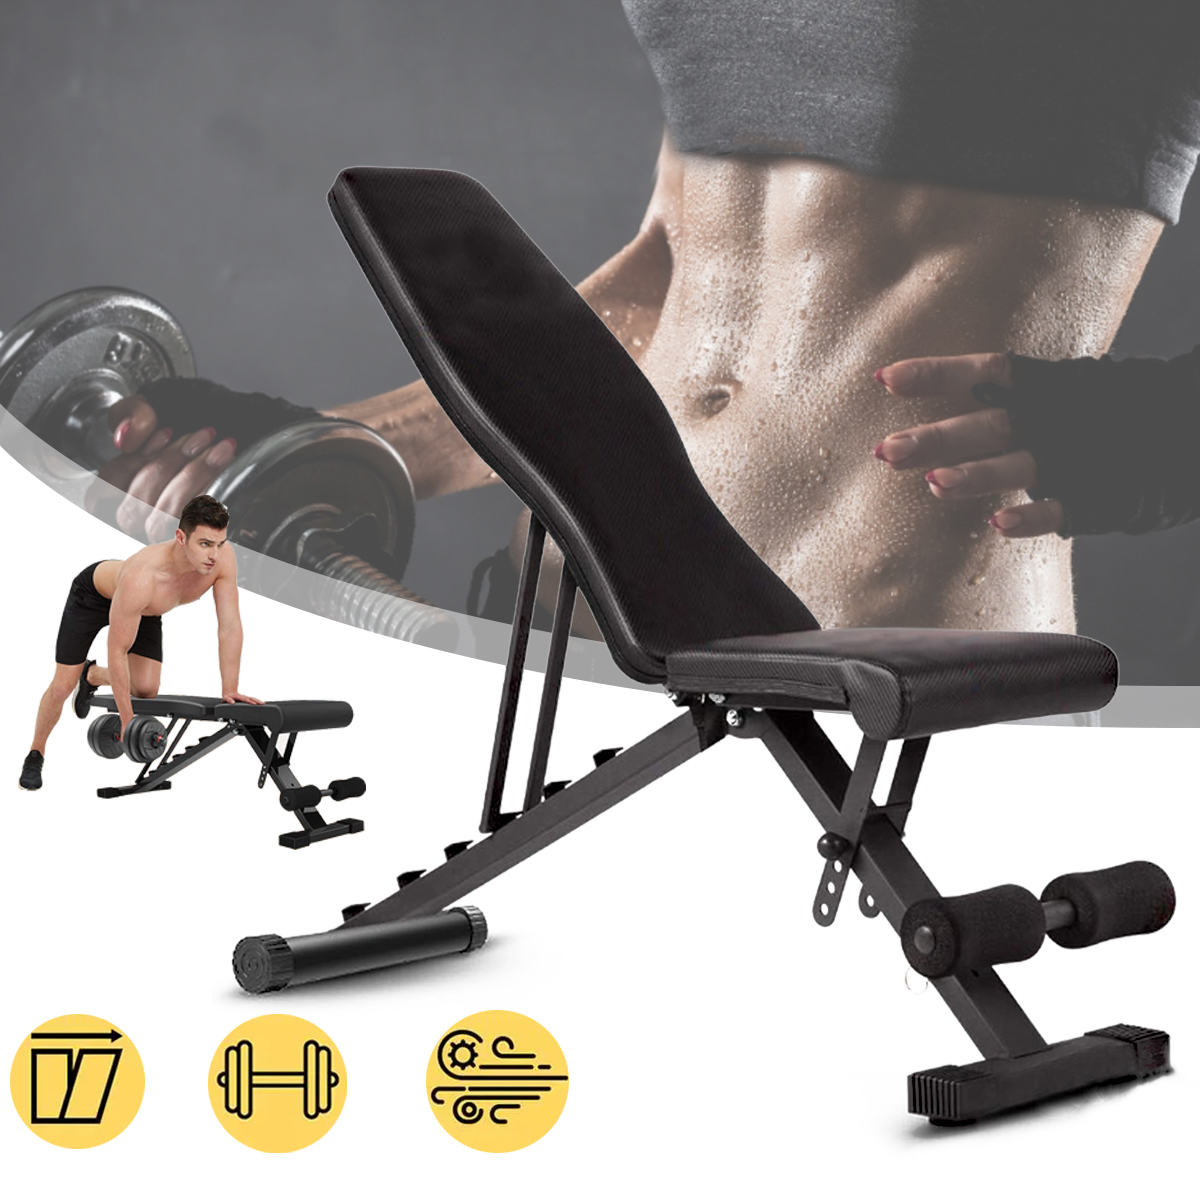 Multifunctional Muscle Bench Folding Abdominal Workout Bench Adjustable Weight Bench Gym Home Sport Fitness Equipment